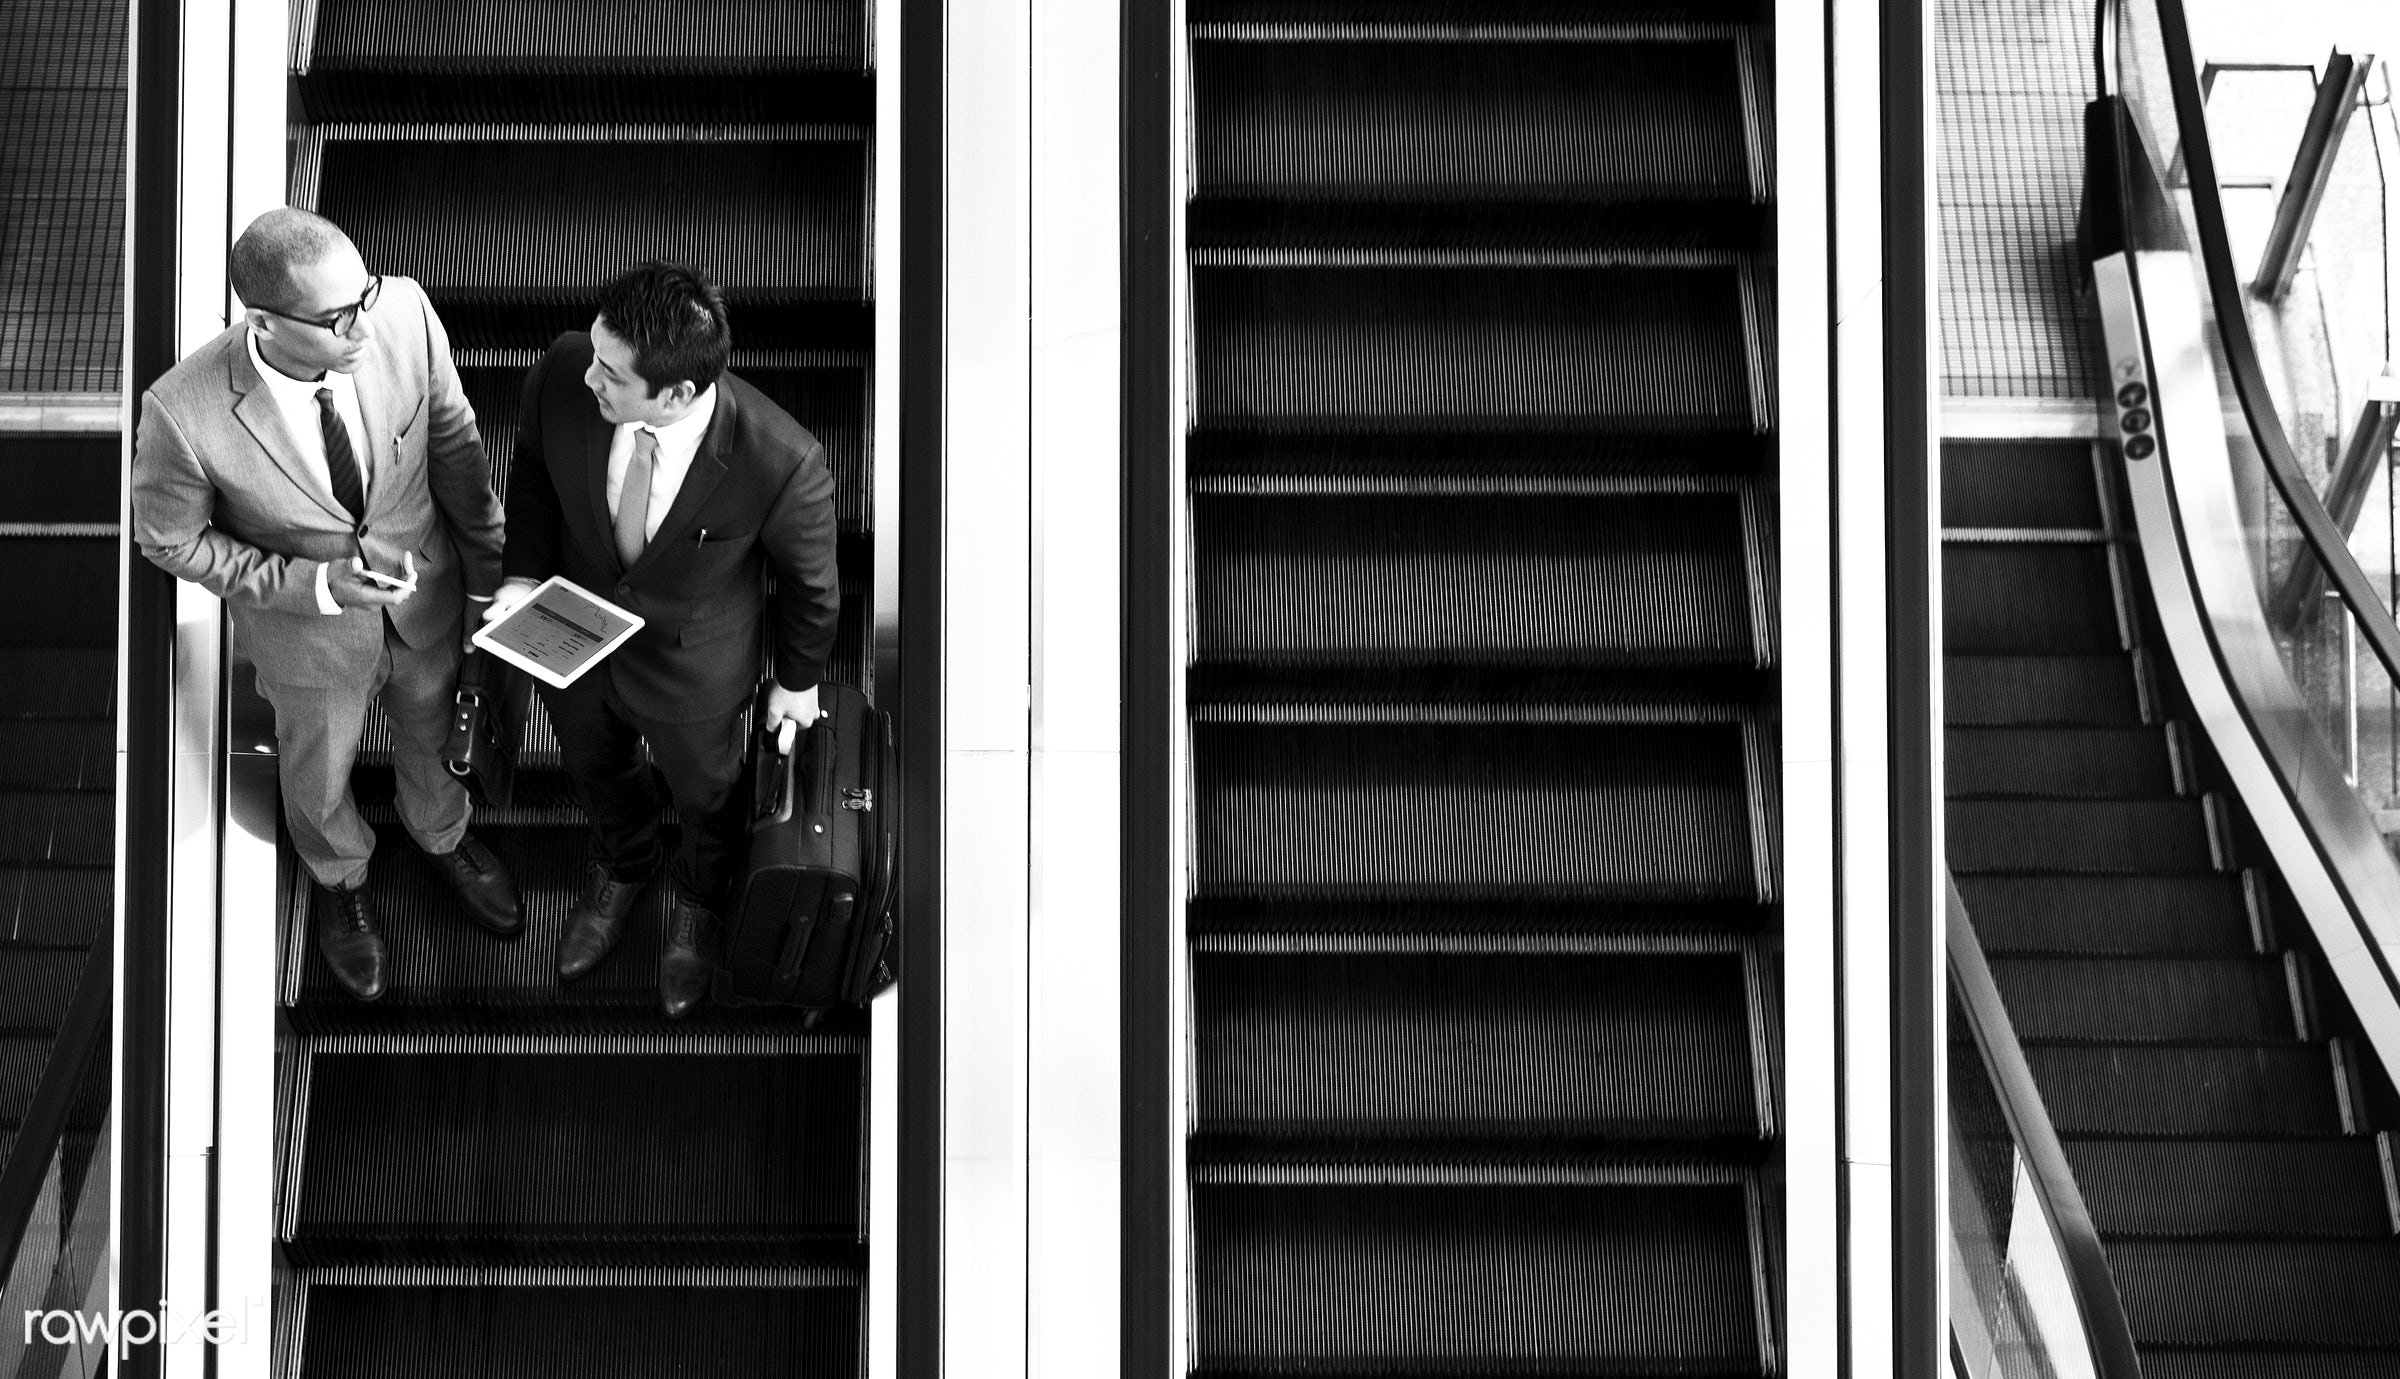 Businessmen on the escalator - asian, business, business men, business people, business travel, businessman, businessmen,...